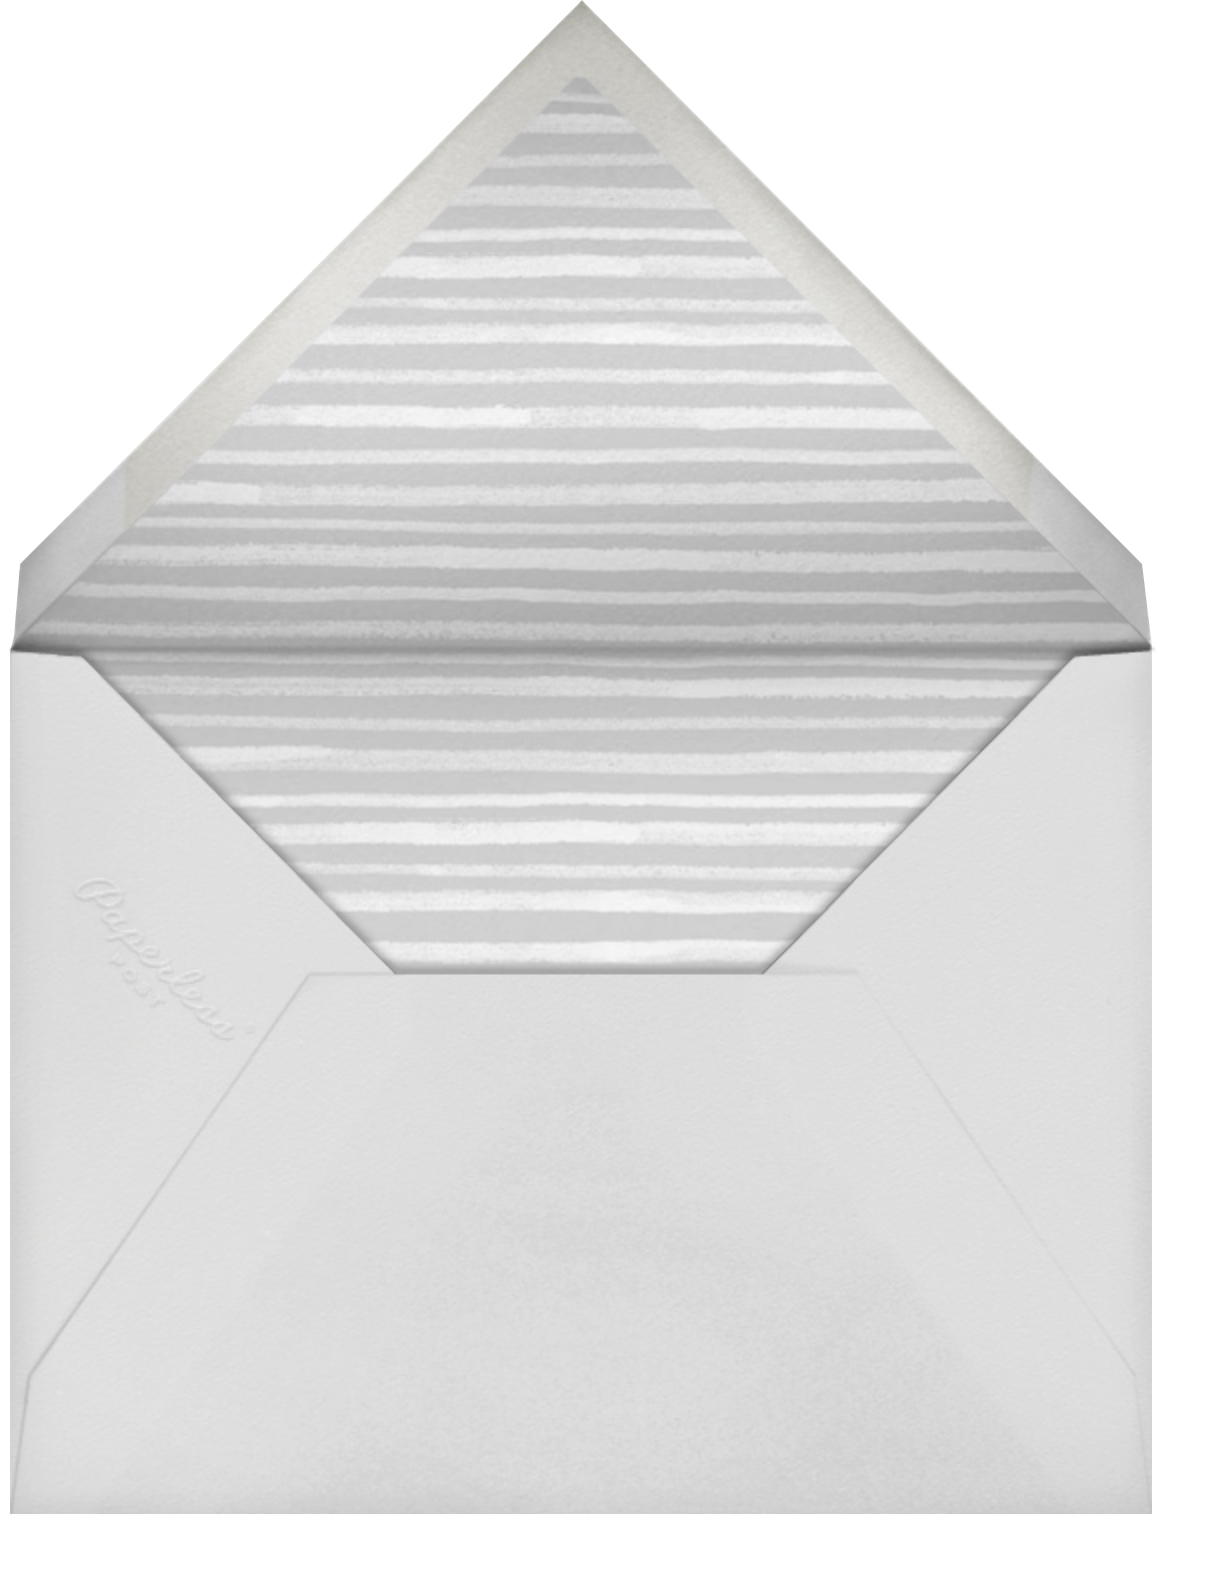 Tropical Palm - Mint - Paperless Post - All - envelope back